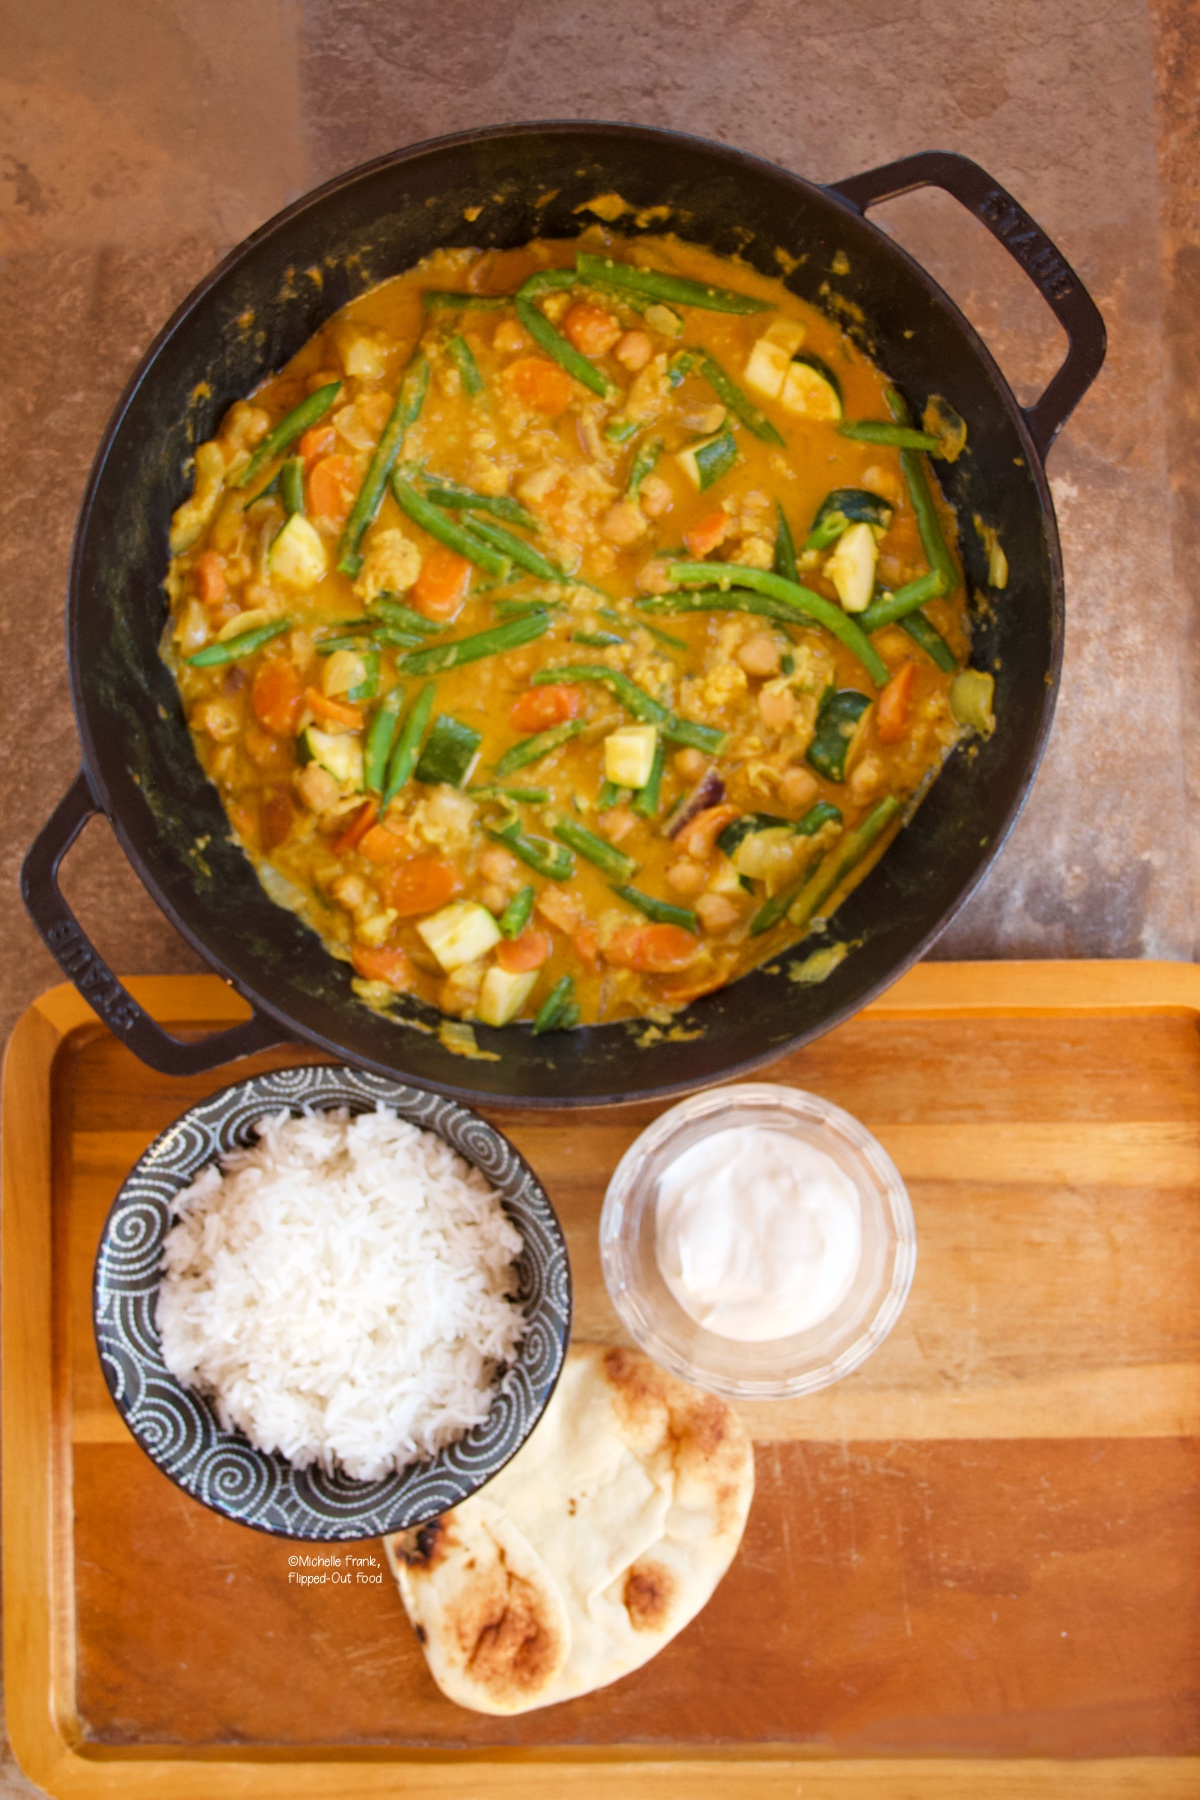 Easy Red Vegetable Curry in a cast-iron wok next to a bowl of rice, a pita, and a ramekin of Greek yogurt.